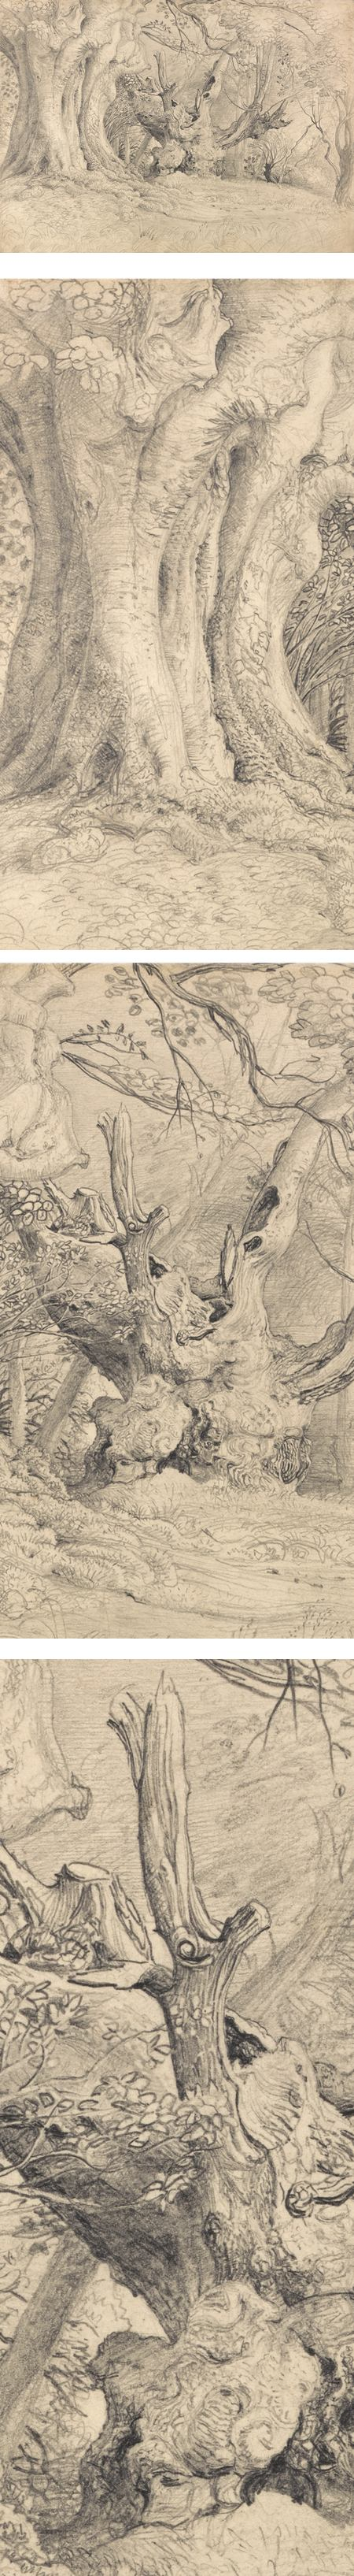 Ancient Trees, Lullingstone Park, Samuel Palmer